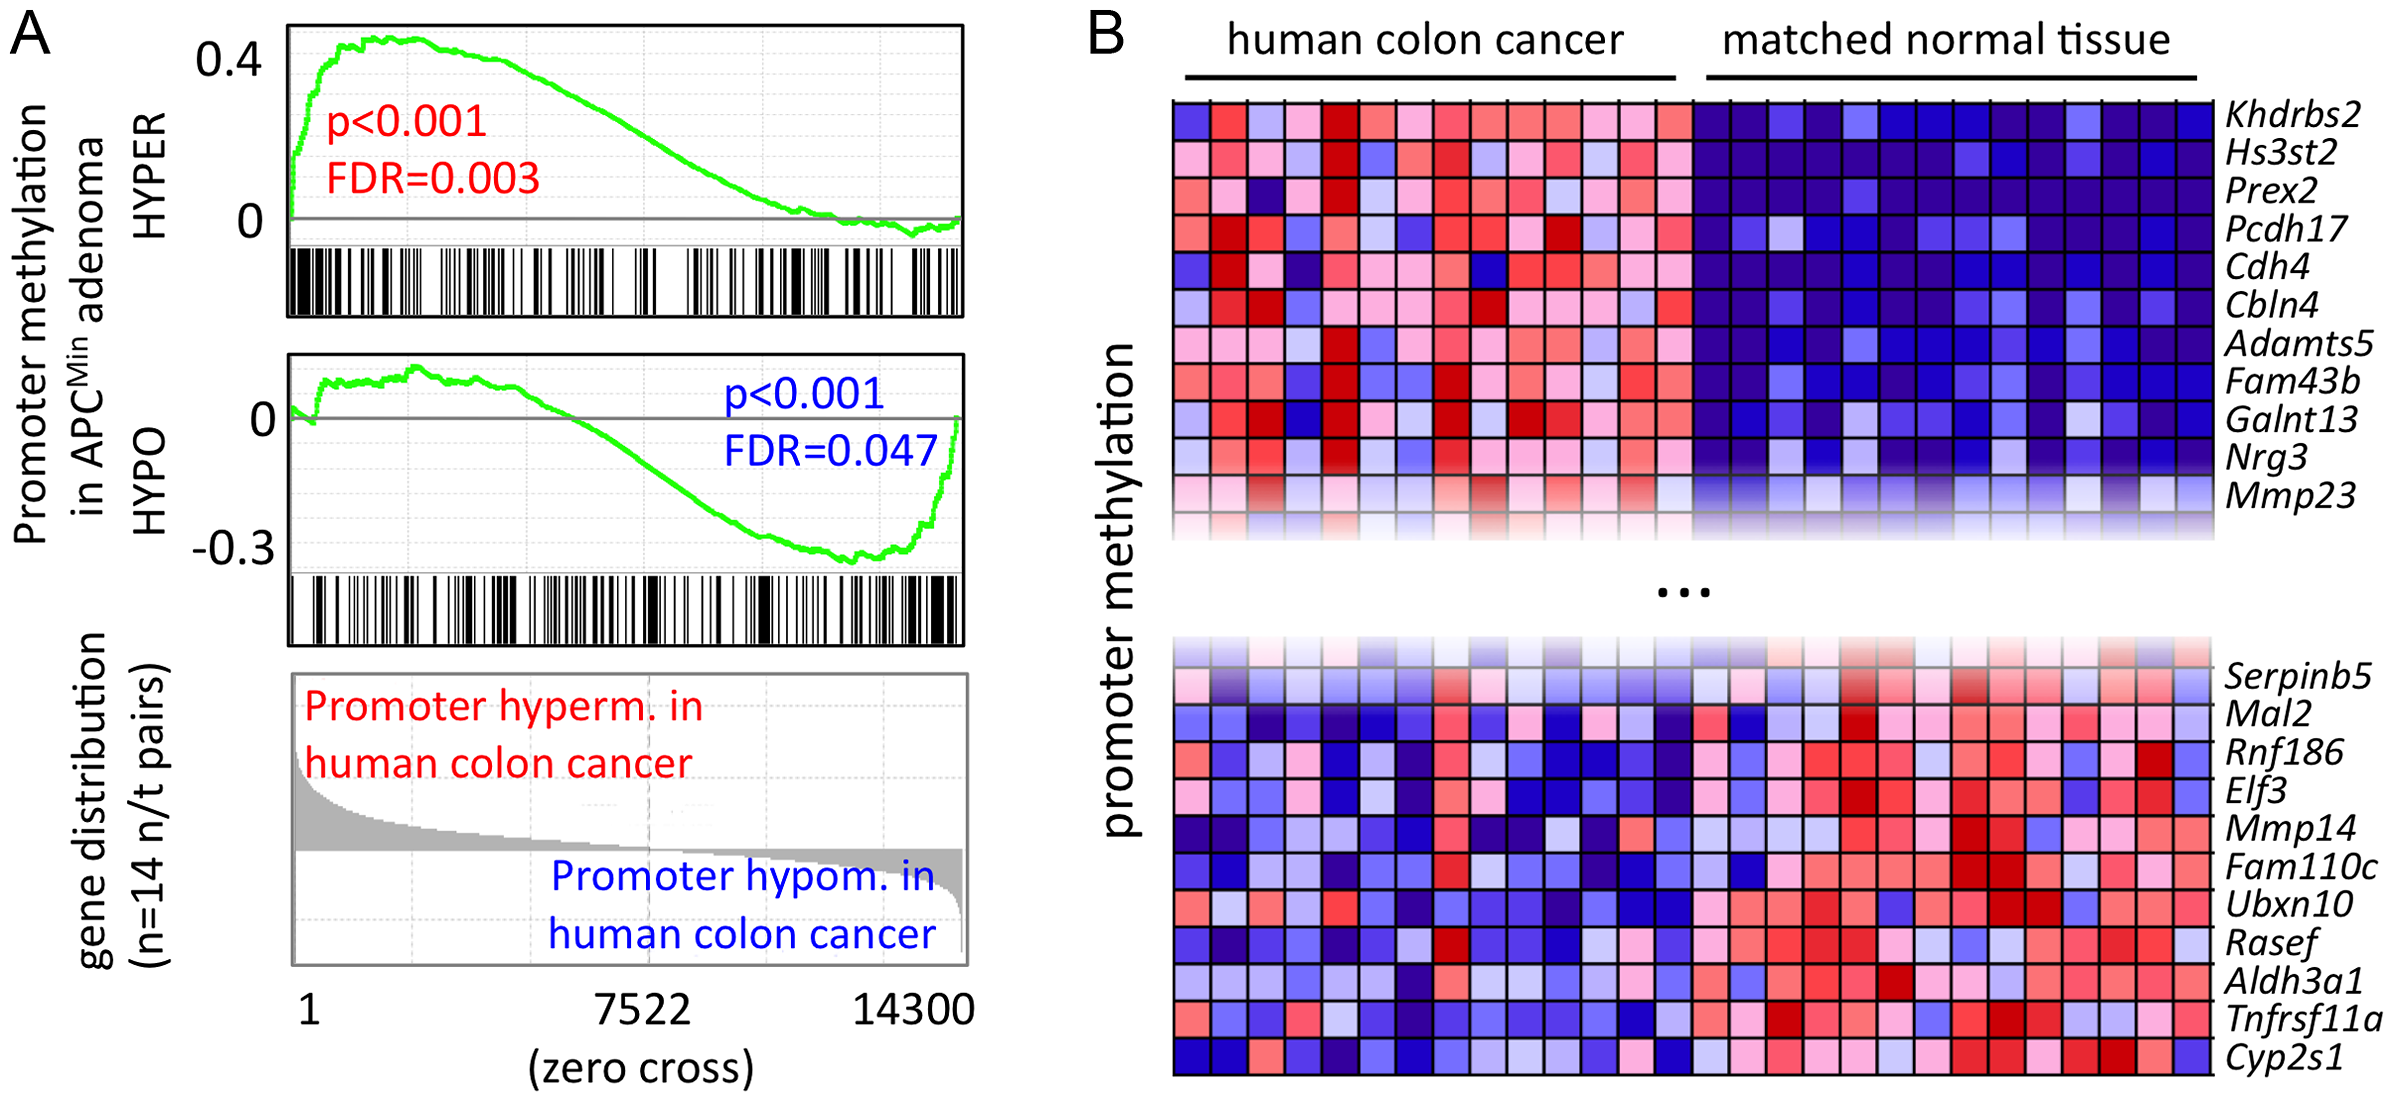 A core set of APC<sup>Min</sup> adenoma-specific CpG methylation patterns is conserved in human colon cancer.